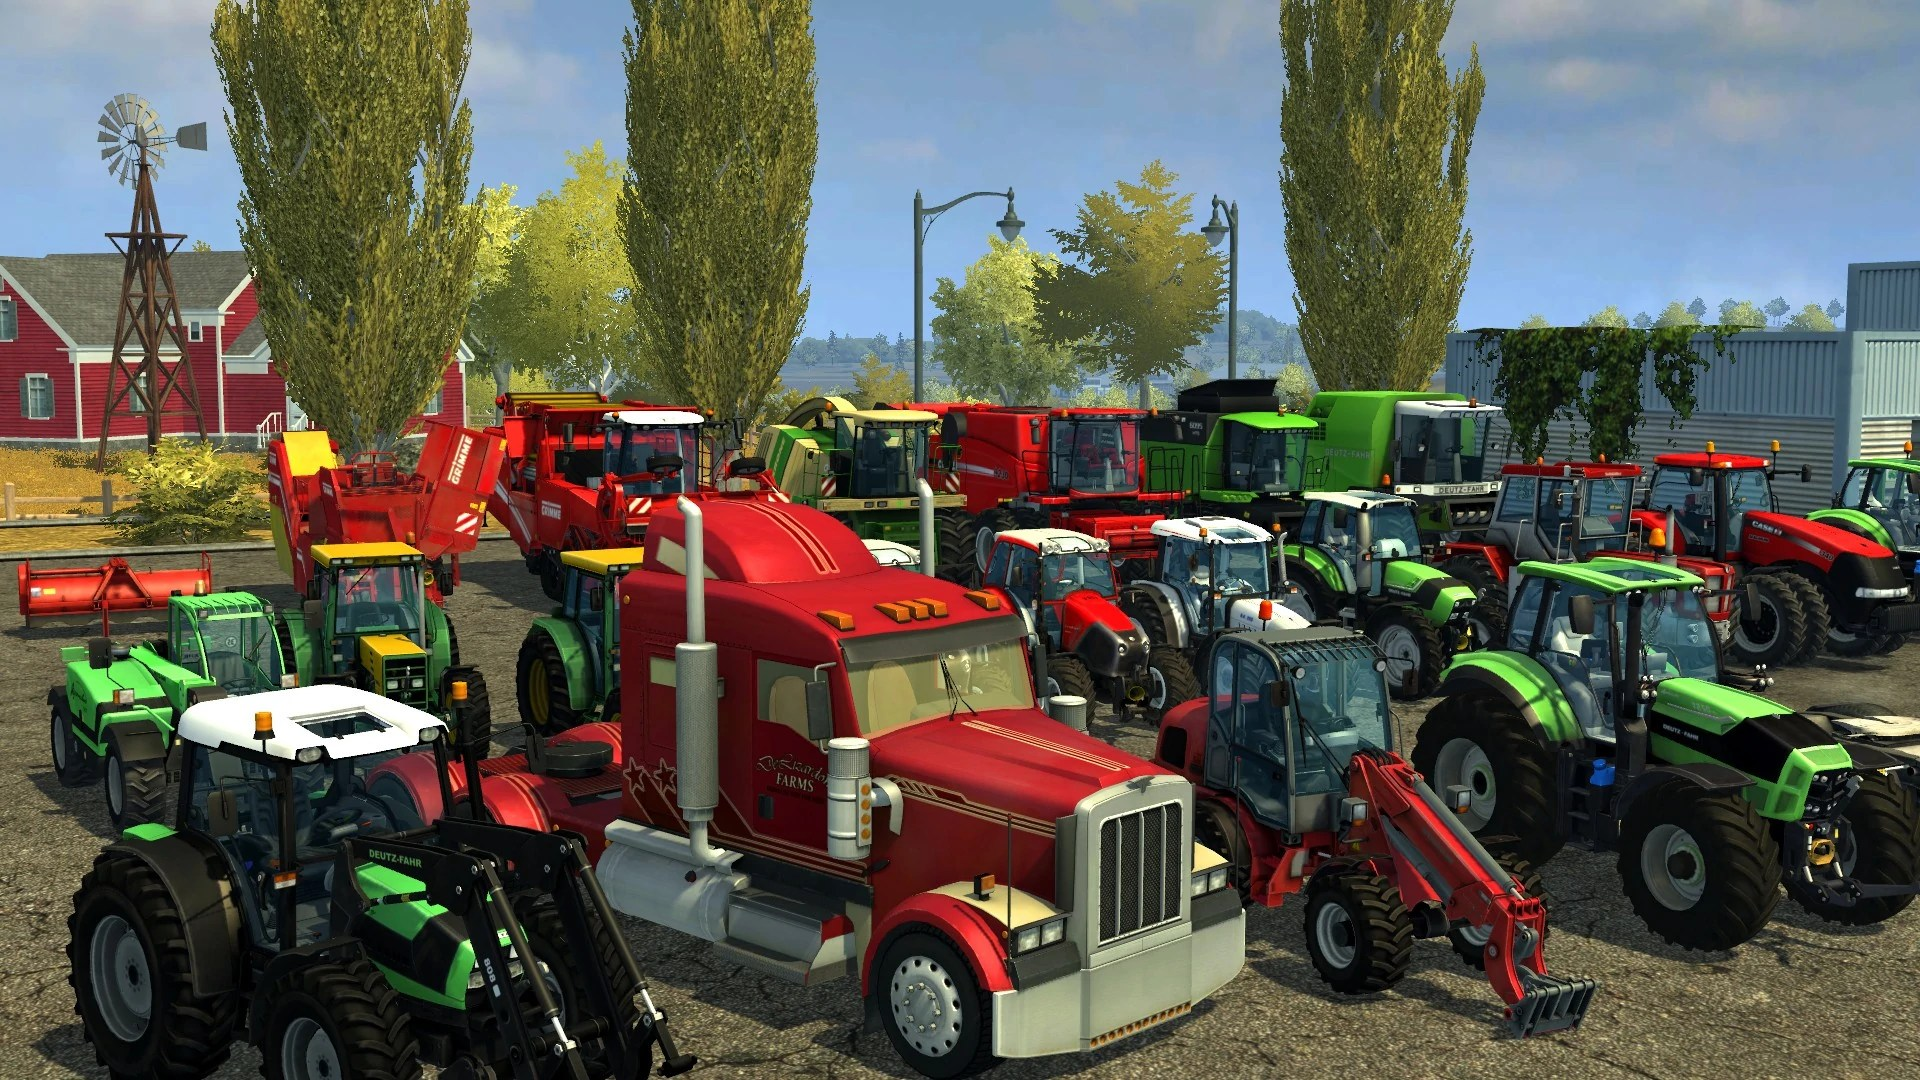 Ls 2013 Farming Simulator Downloadable Content Packs Farming Simulator 2013 Farming